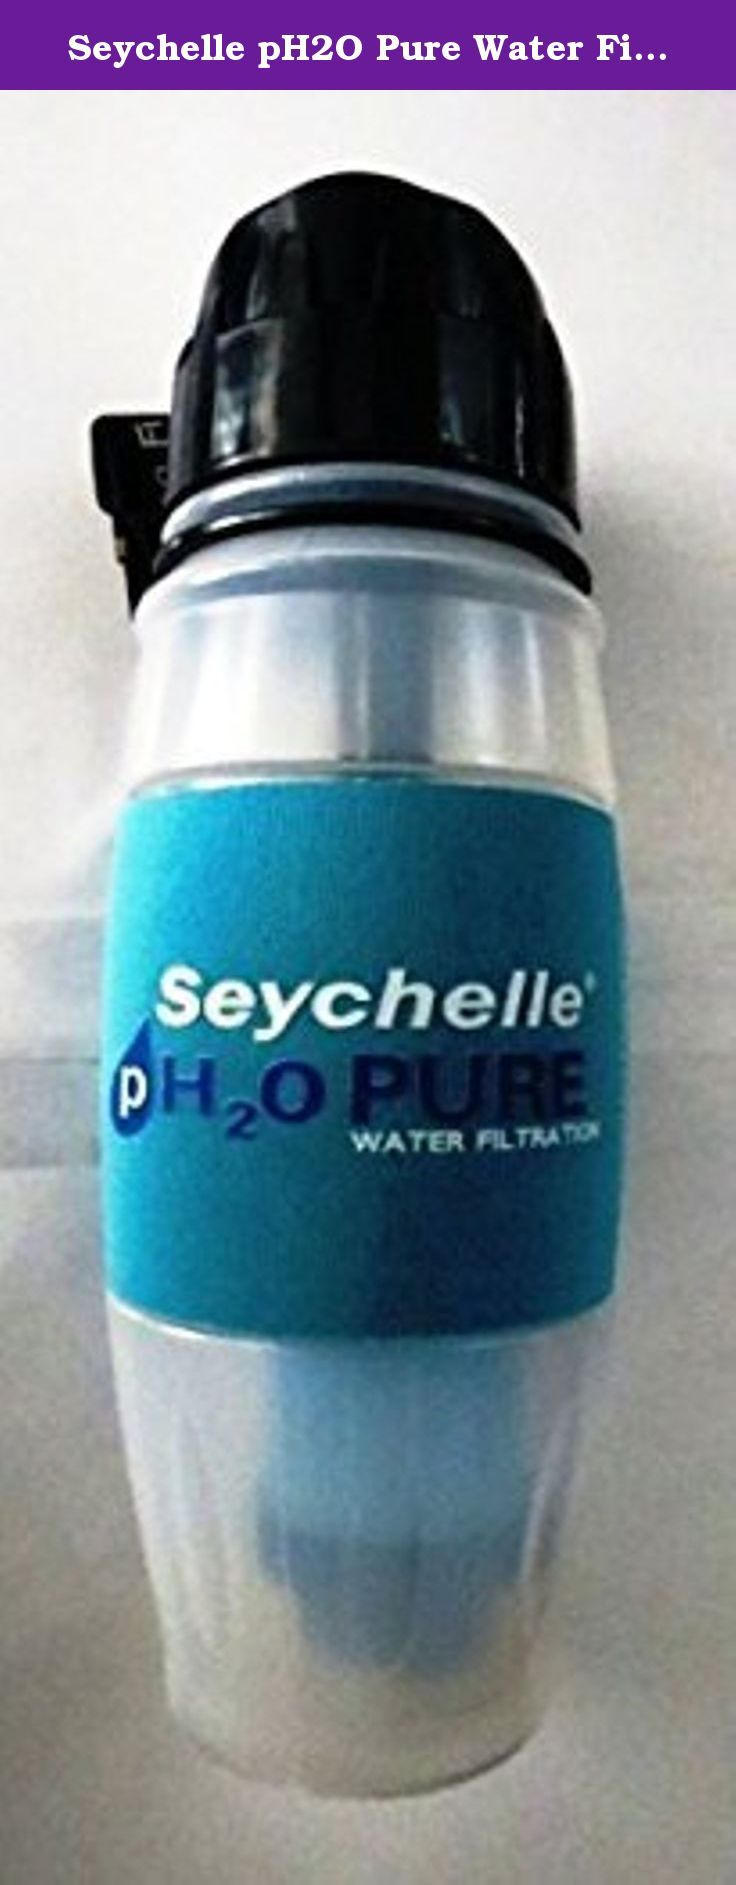 Seychelle pH2O Pure Water Filtration Bottle with Alkaline (pH Enhanced) Filter 28oz. The Seychelle pH2O Pure Water Filtration Bottle increases the alkalinity (pH) of drinking water up to 9.5 pH. The pH2O filter is designed to be used as a drinking water filter for use with municipal water, as a bottled water replacement, and for those who value the benefits of alkaline filtered water. It also removes up to 99.99% of toxic chemicals, contaminants, and pollutants found in fresh water…